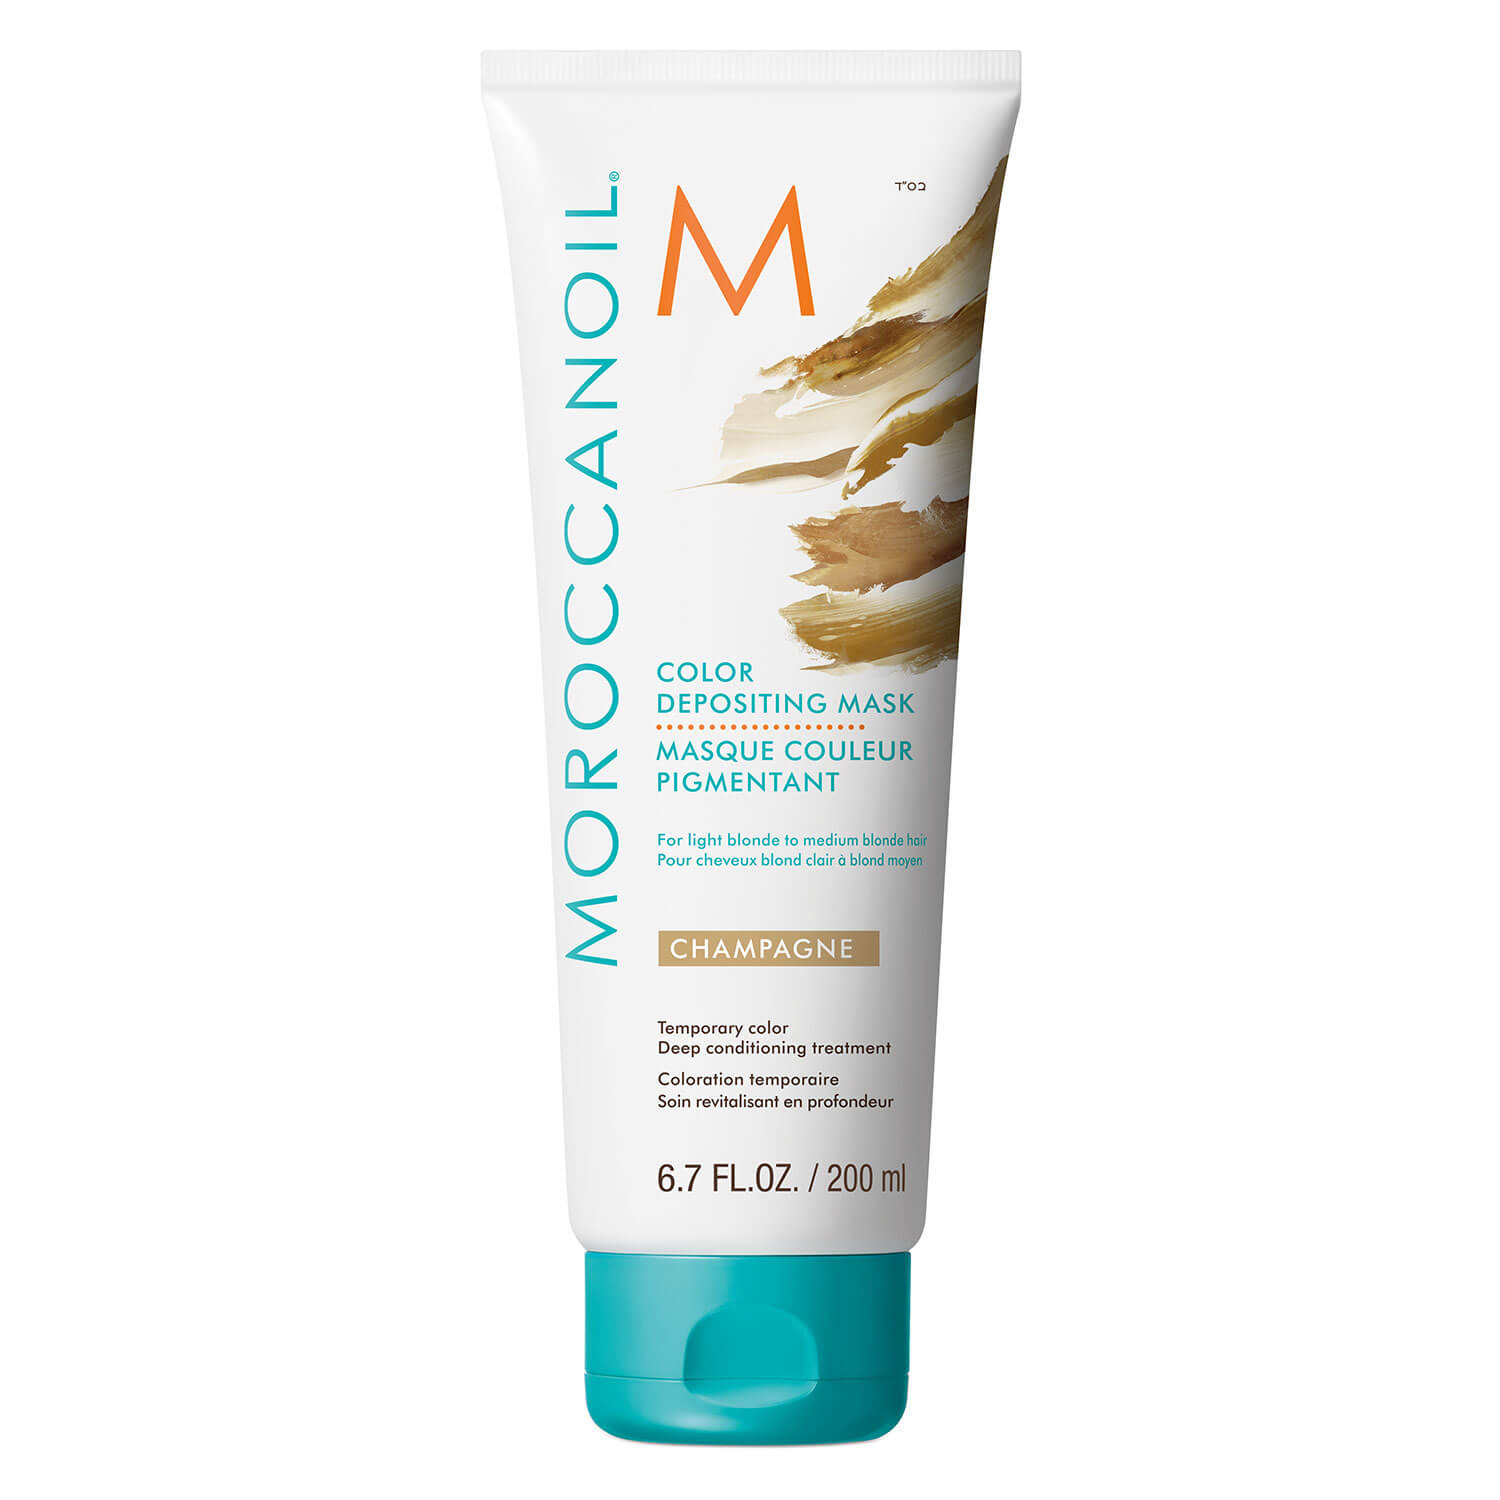 Moroccanoil - Color Depositing Mask Champagne